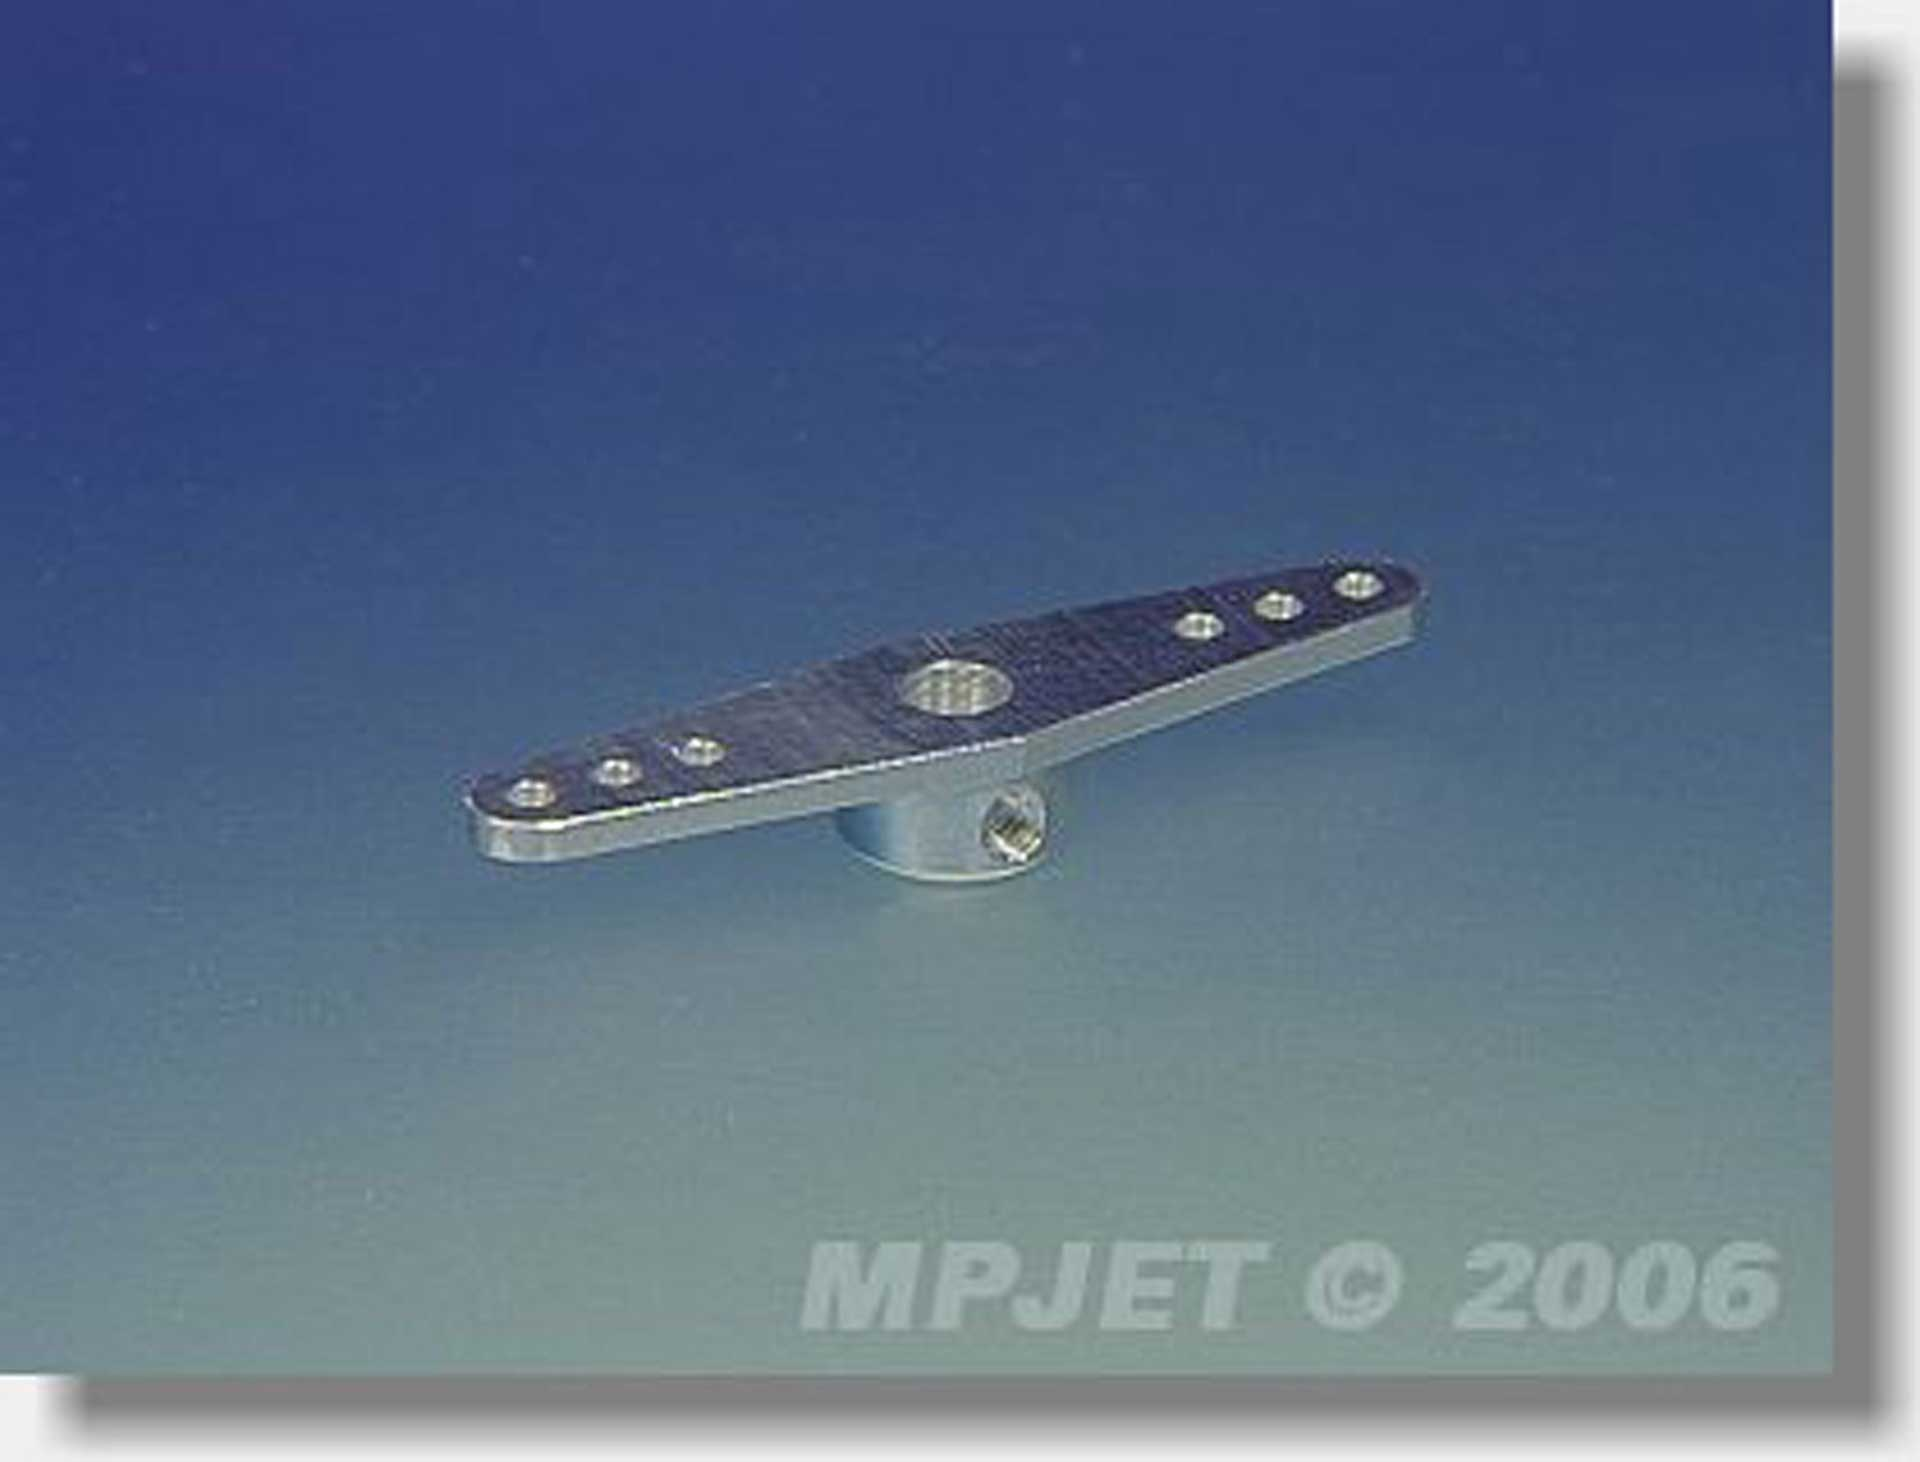 MP-JET ALUMINIUM LEVER ARM DIA 4MM MEDIUM